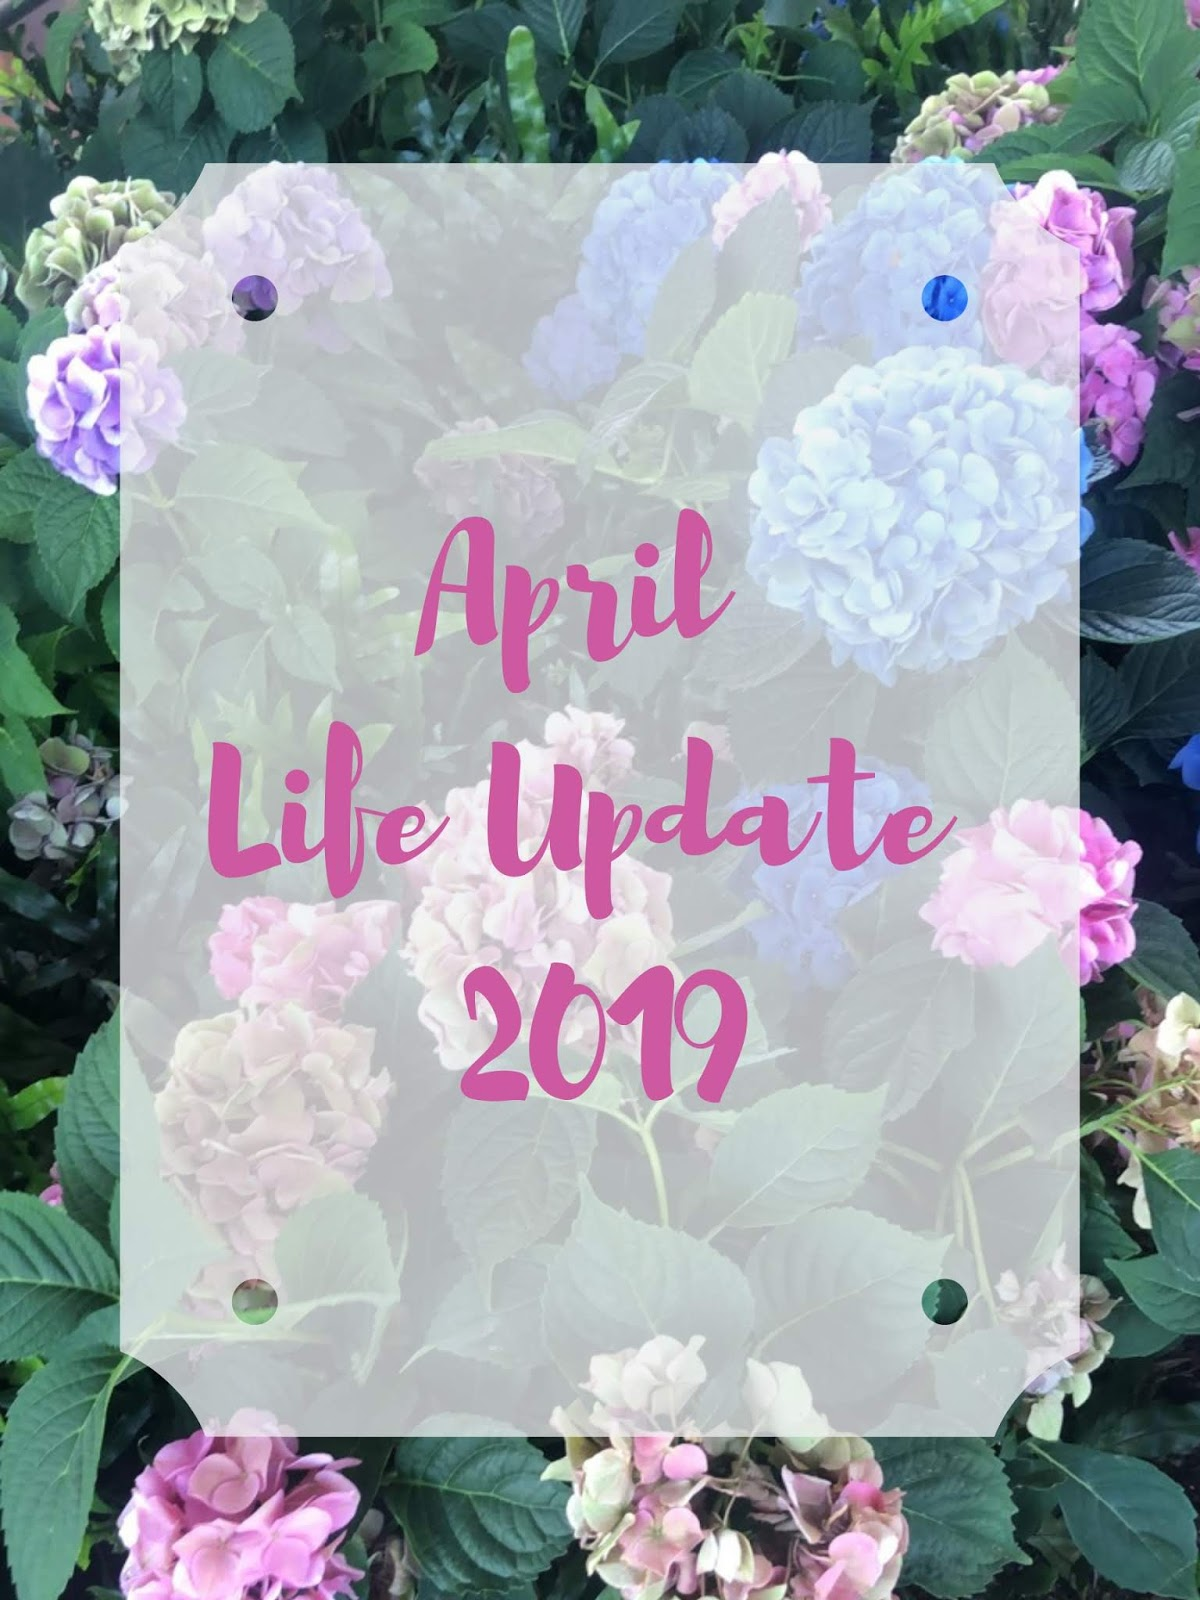 Stephanie Kamp Blog: April Life Update 2019